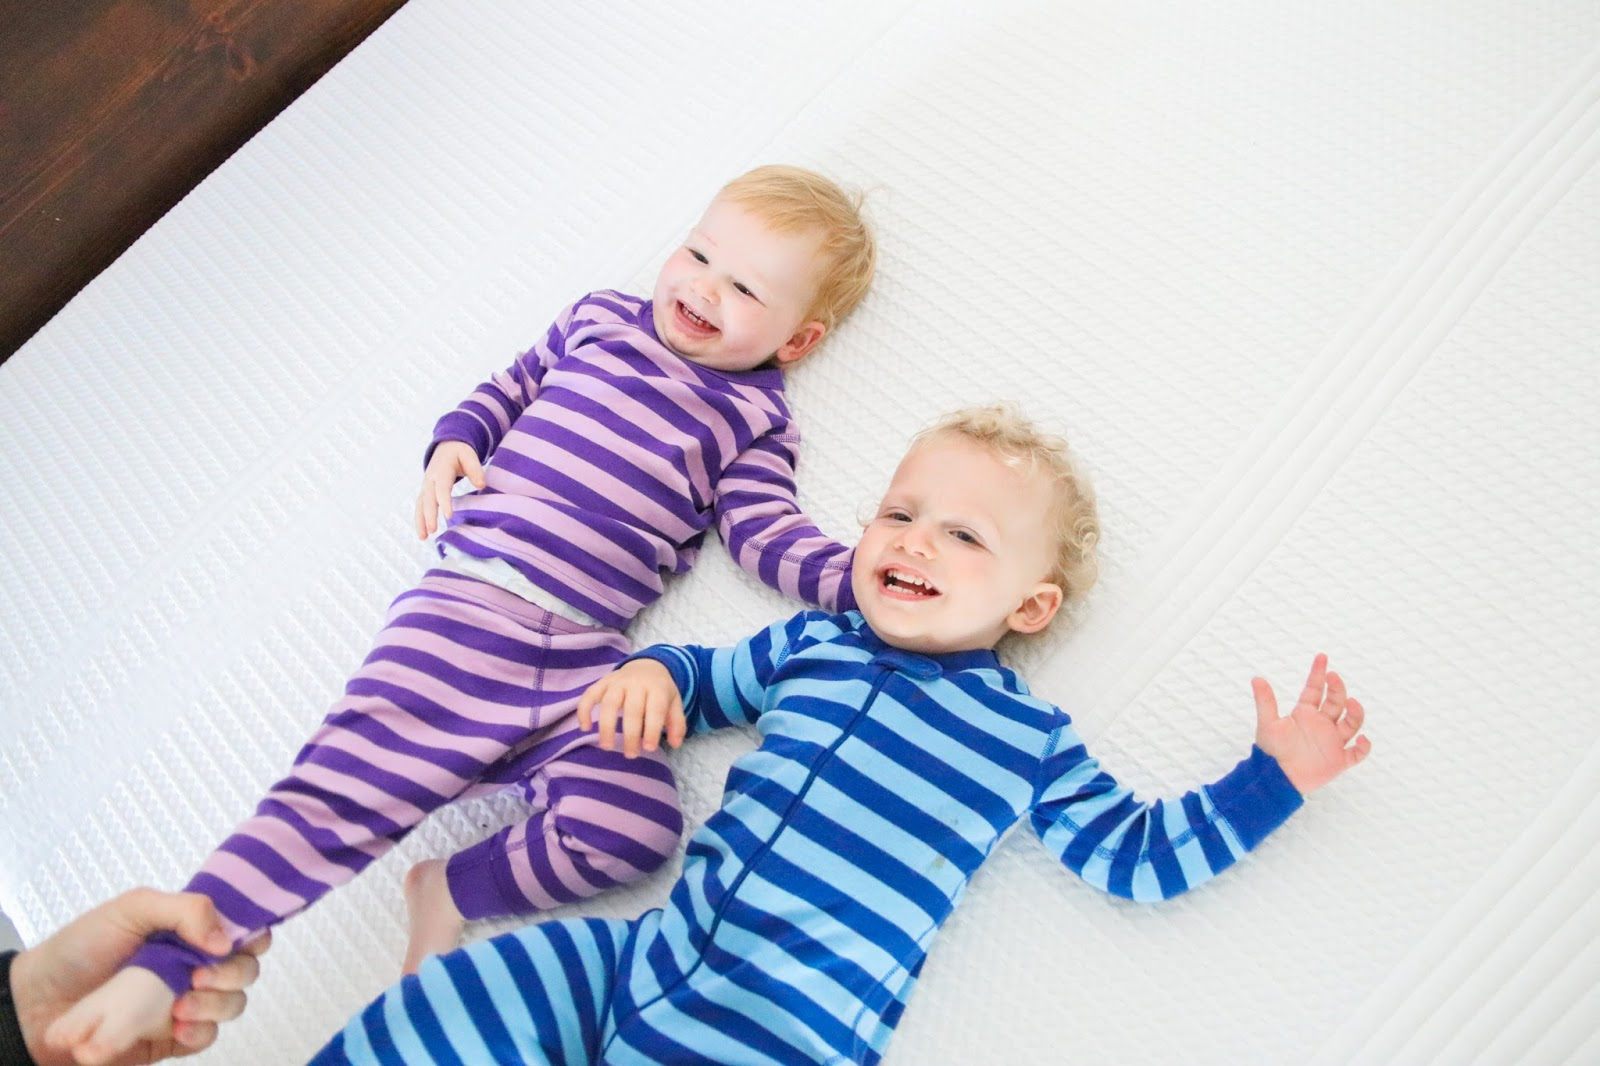 nora mattress, wayfair, wayfair nora mattress review, mattress review, wayfair mattress, soft and firm mattress, hanna andersson pajamas, austin blogger, texas blogger, texas mom blogger, co sleeping, parenting twins, twin parenting, bed review, wayfair blogger